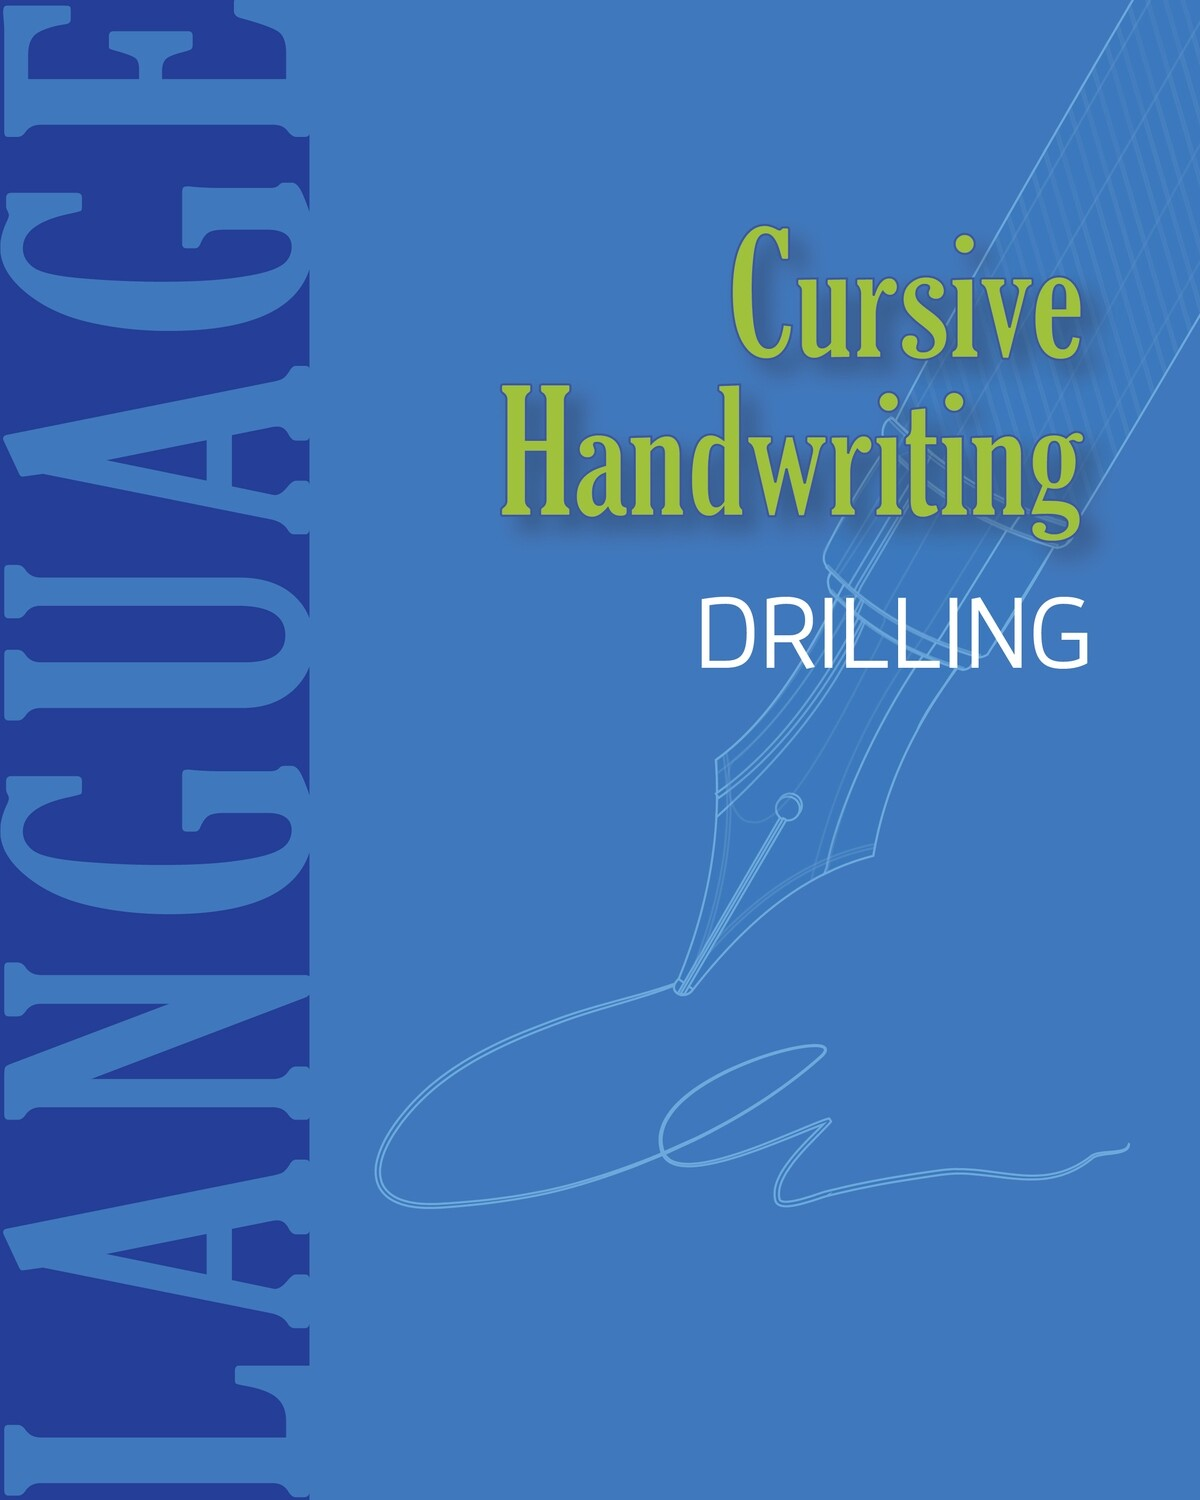 Cursive Handwriting Drilling